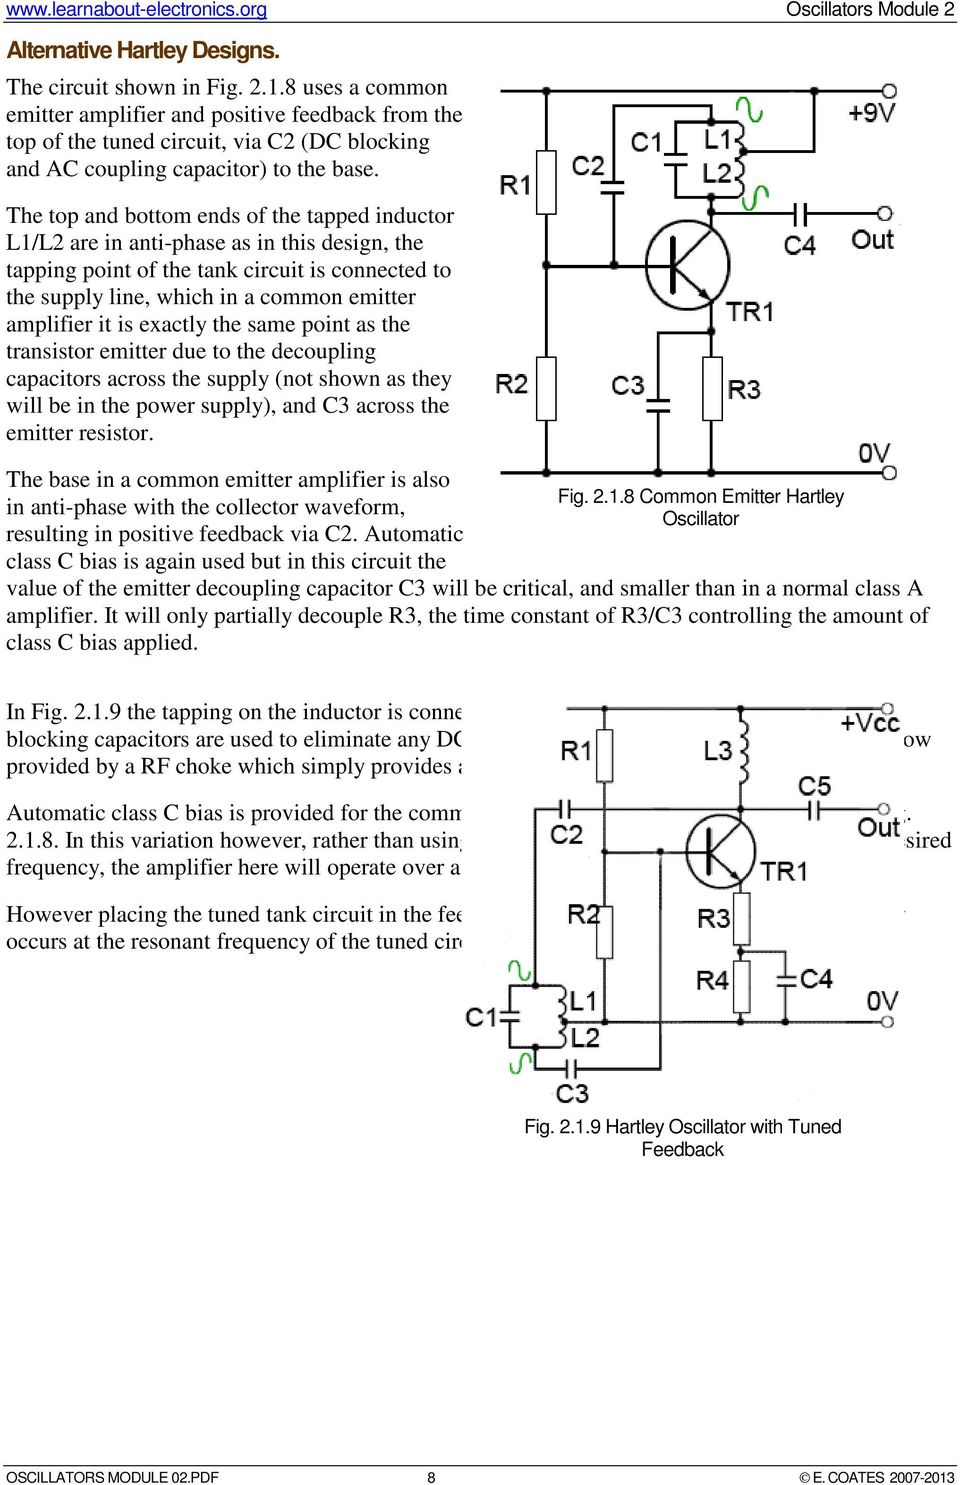 Oscillators 20 Rf Sine Wave Module Pdf Lm386 As Btl Amplifier Circuit Diagram Amplifiercircuit The Top And Bottom Ends Of Tapped Inductor L1 L2 Are In Anti